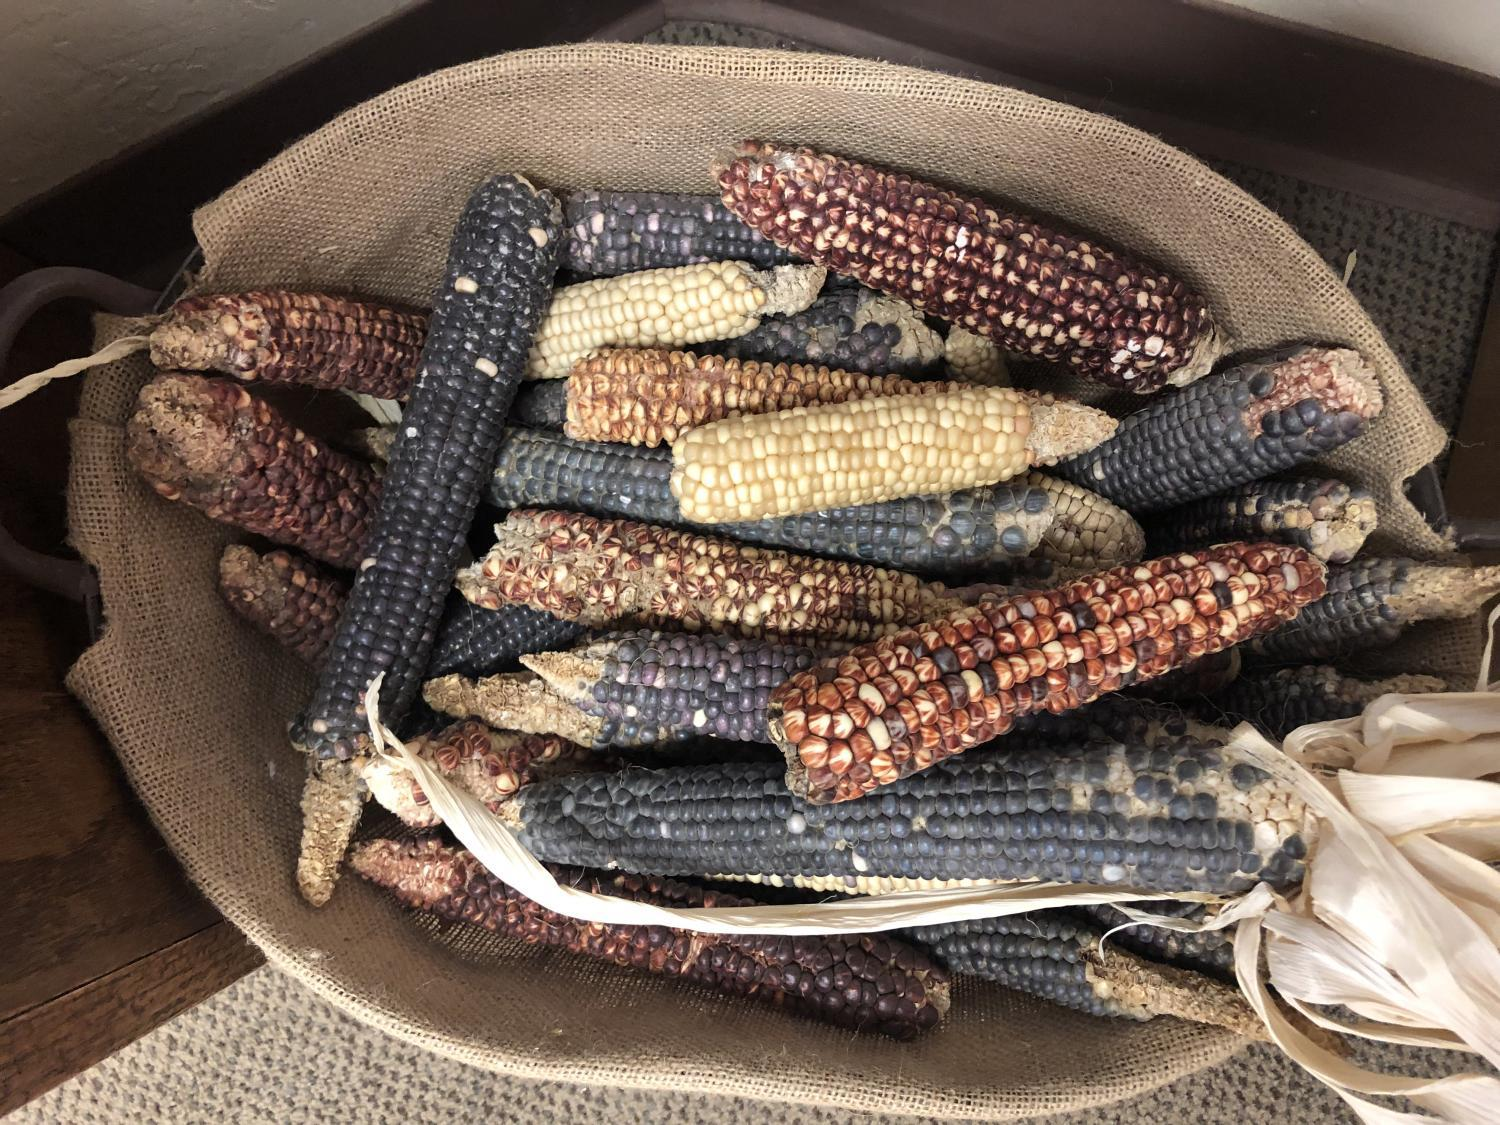 Ramona farms heirloom corn